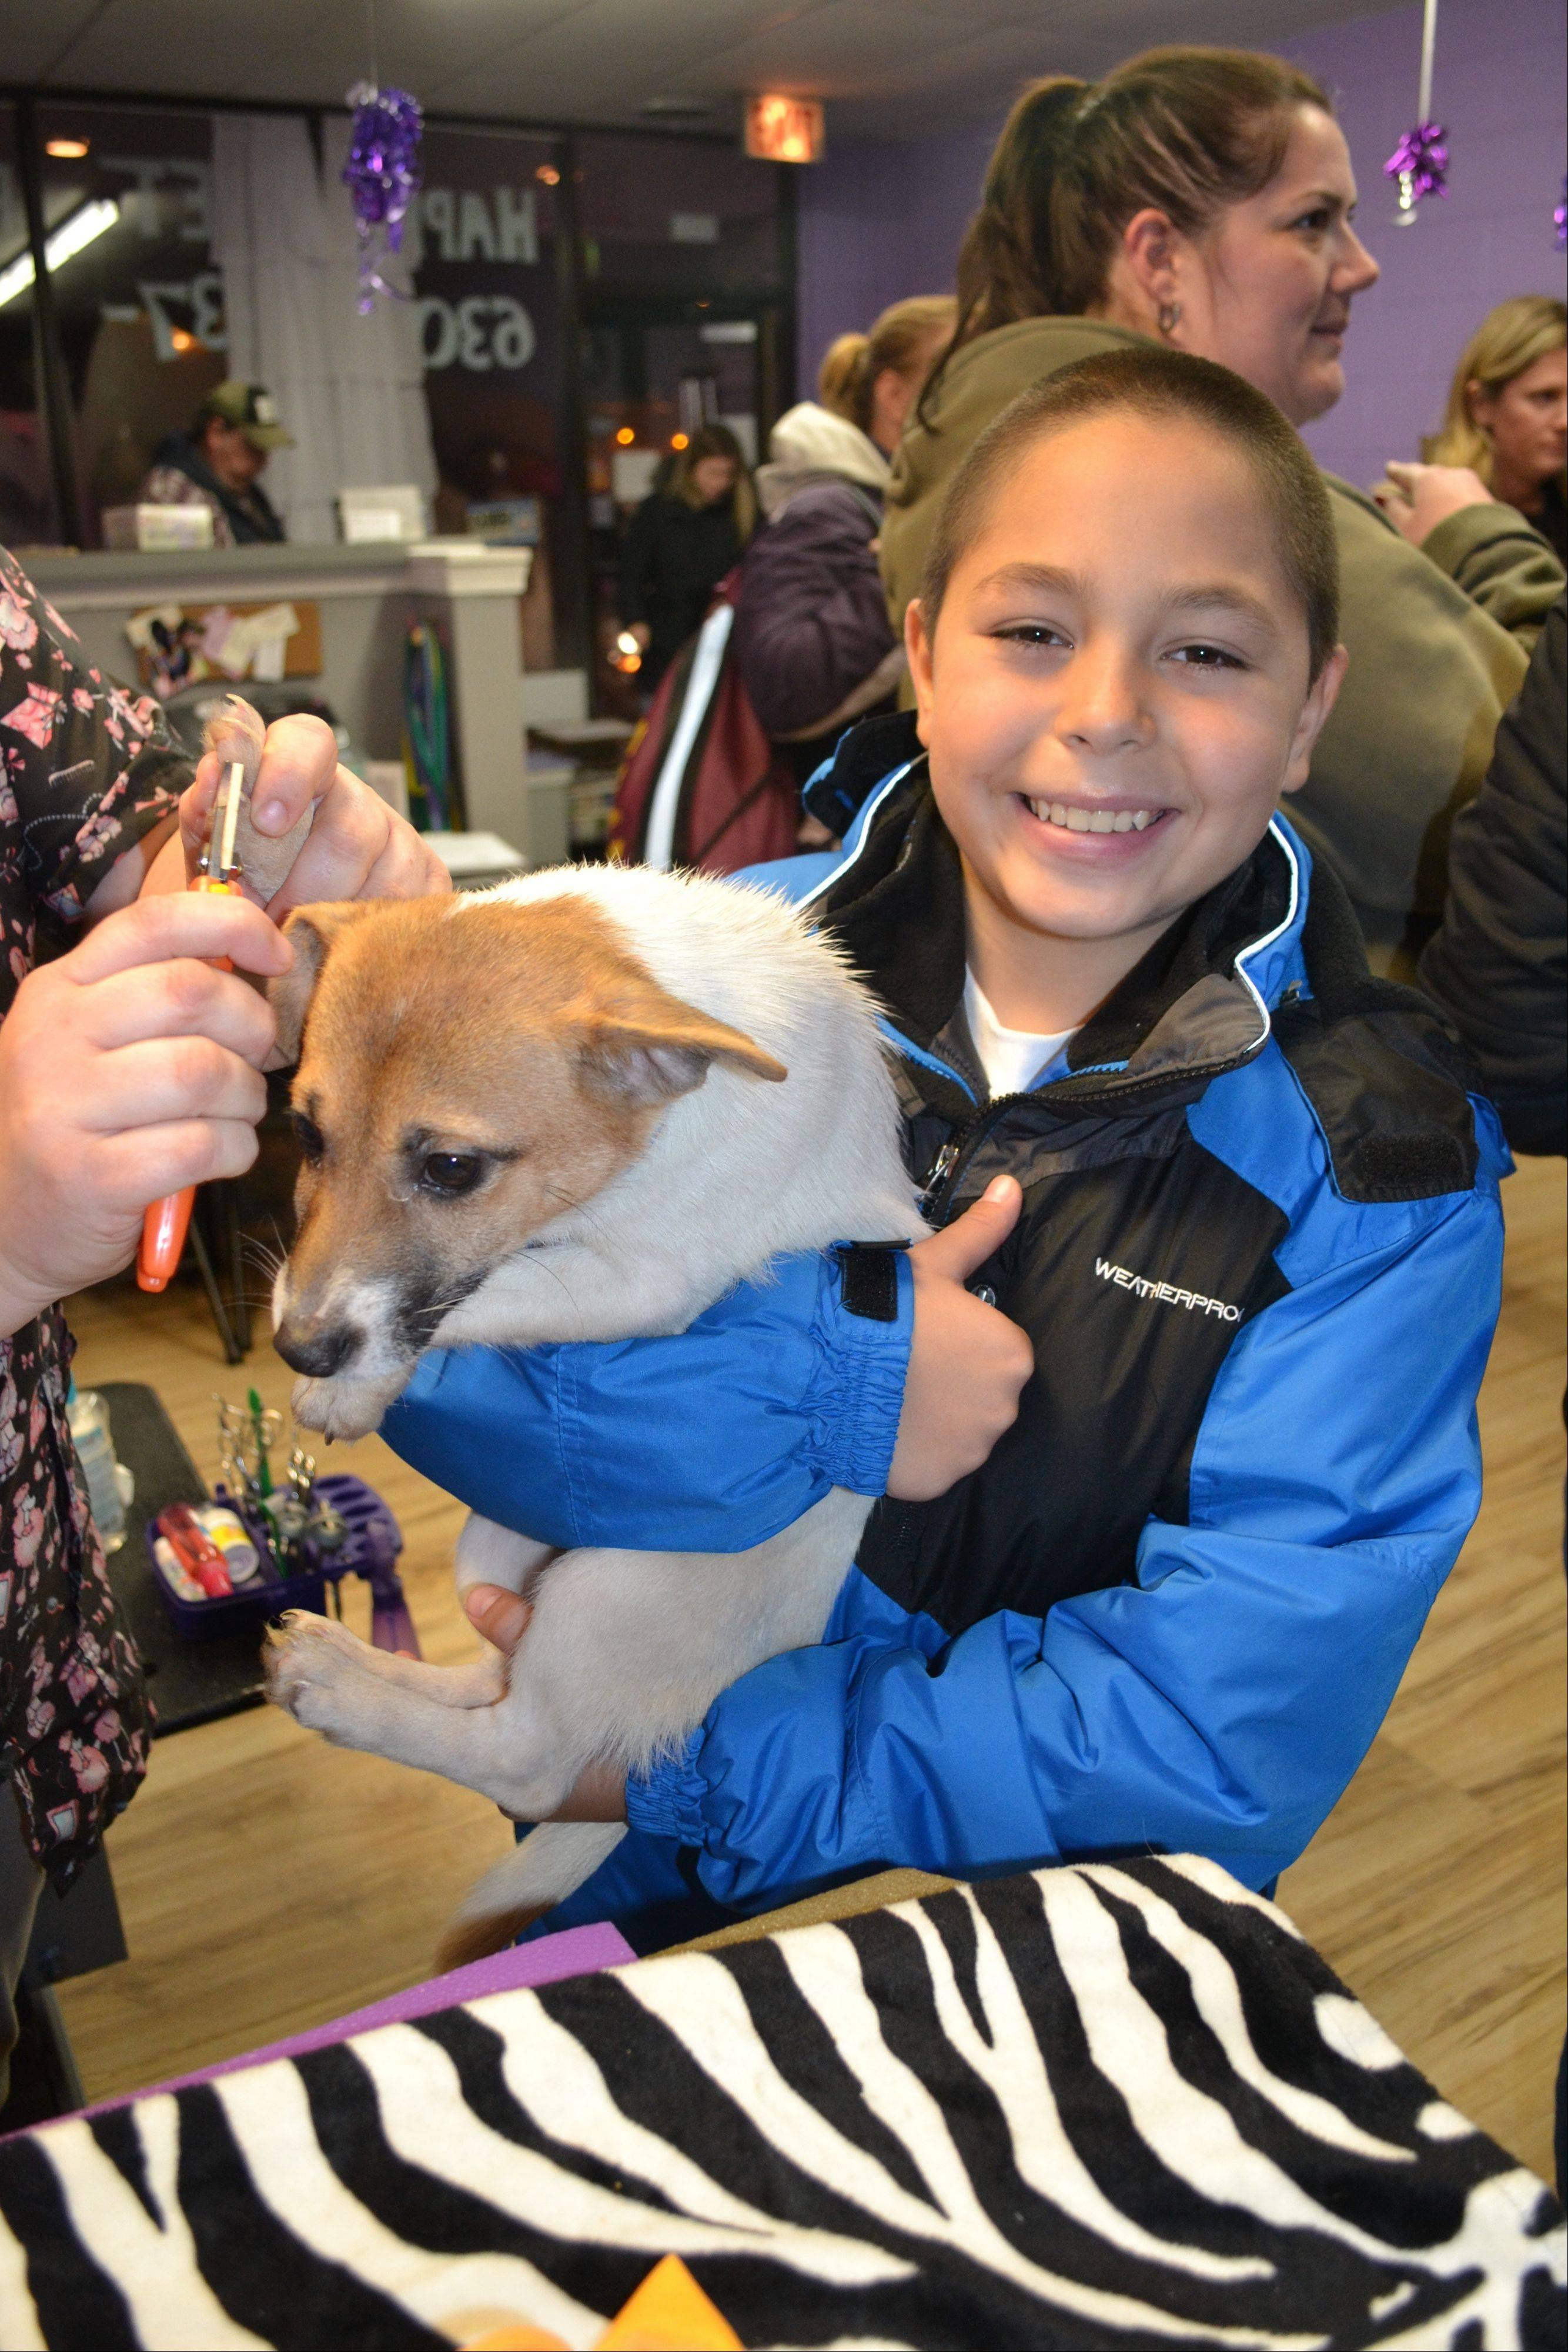 Ricky Chevarria, 11, who came to Happy Pet Parlor, a dog grooming business in Elk Grove Village, to help with the rescue pups, is holding Kewi while Jolie McGrath cuts her nails.